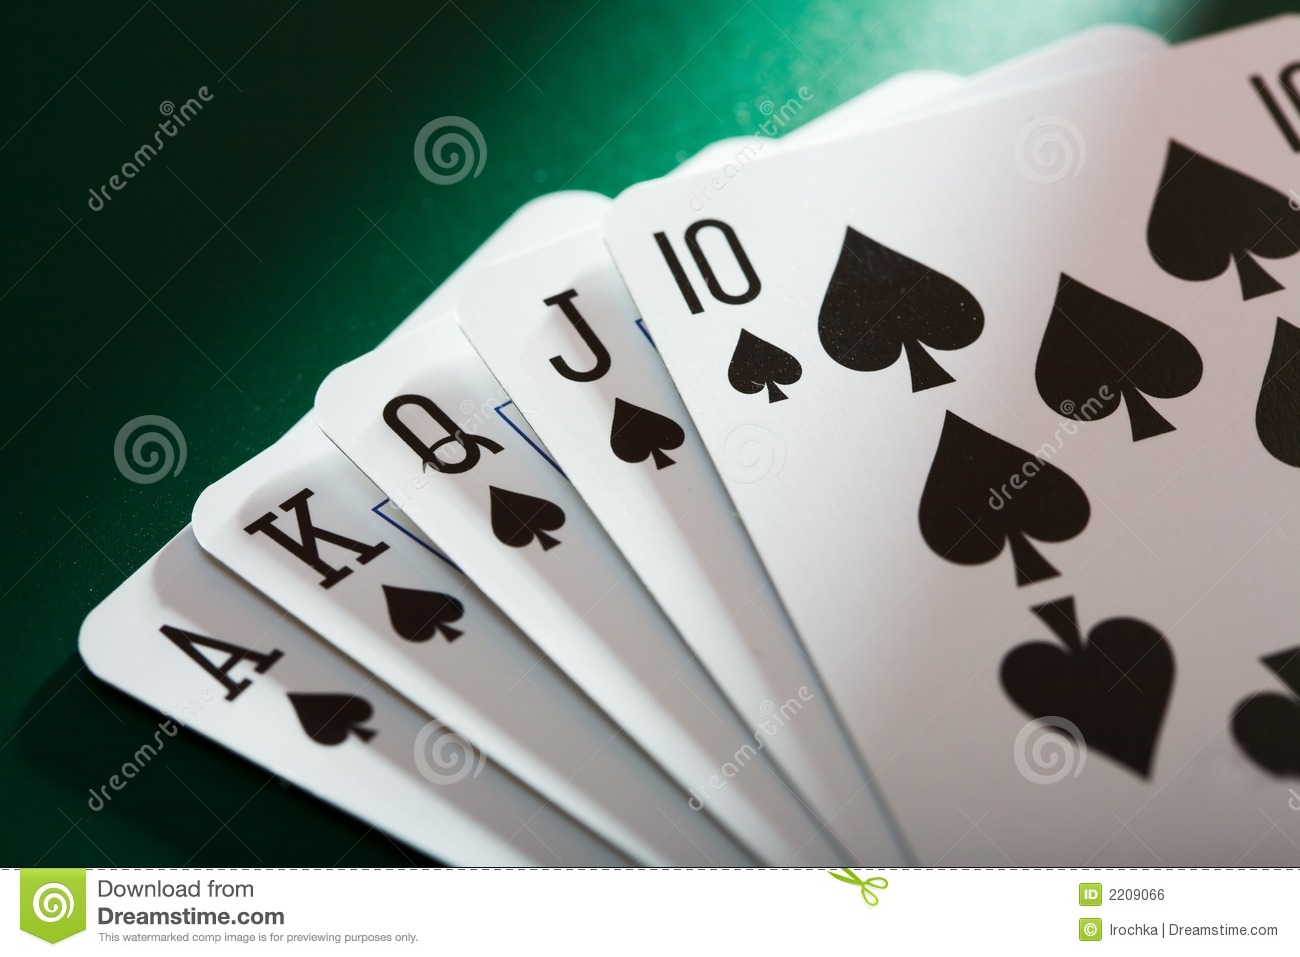 Poker Cards Royalty Free Stock Image - Image: 2209066